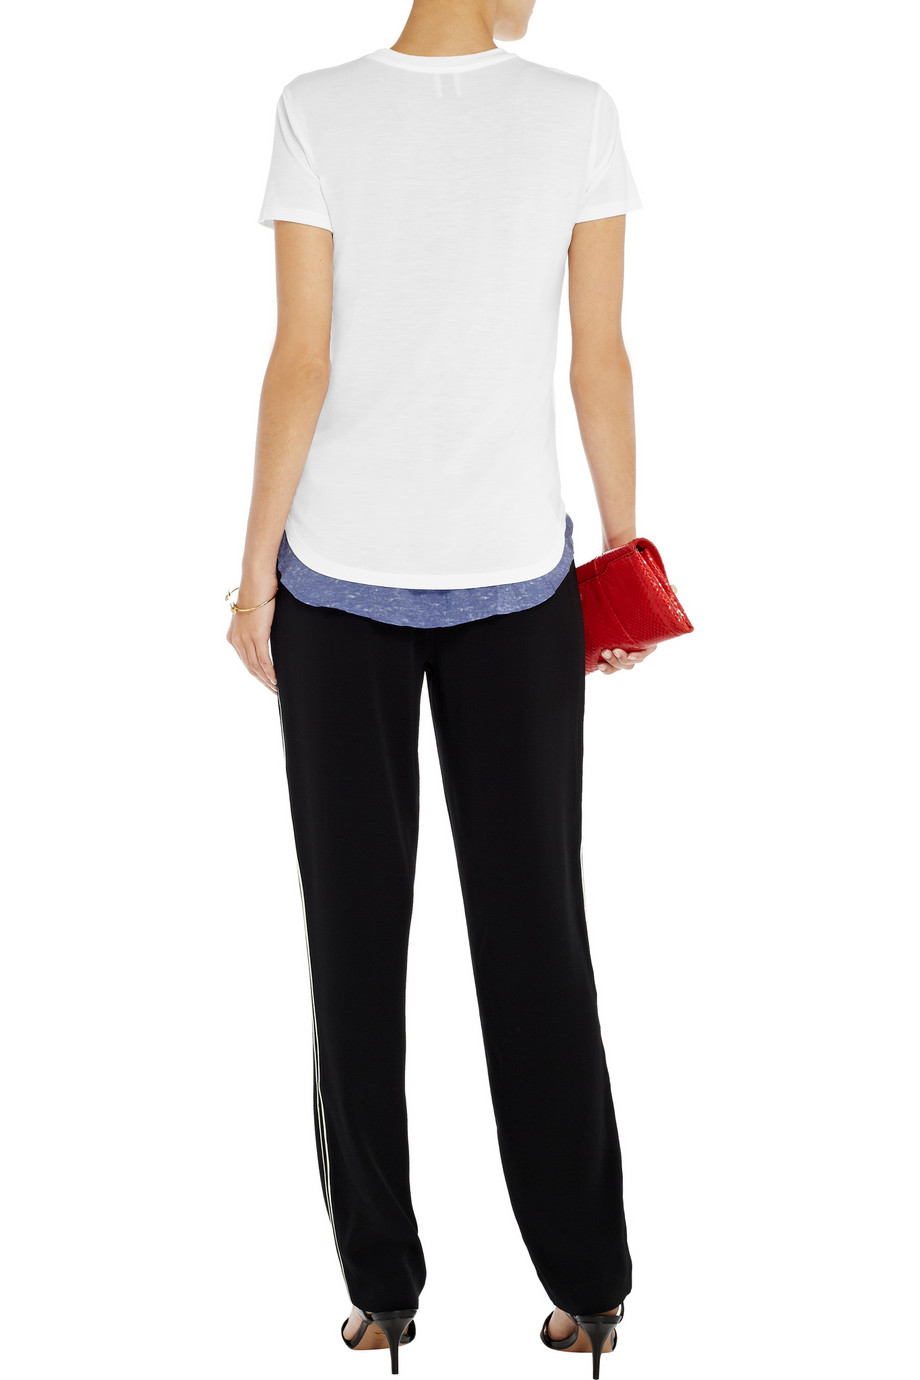 Iris & Ink Valerie jersey T-shirt – 0% at THE OUTNET.COM